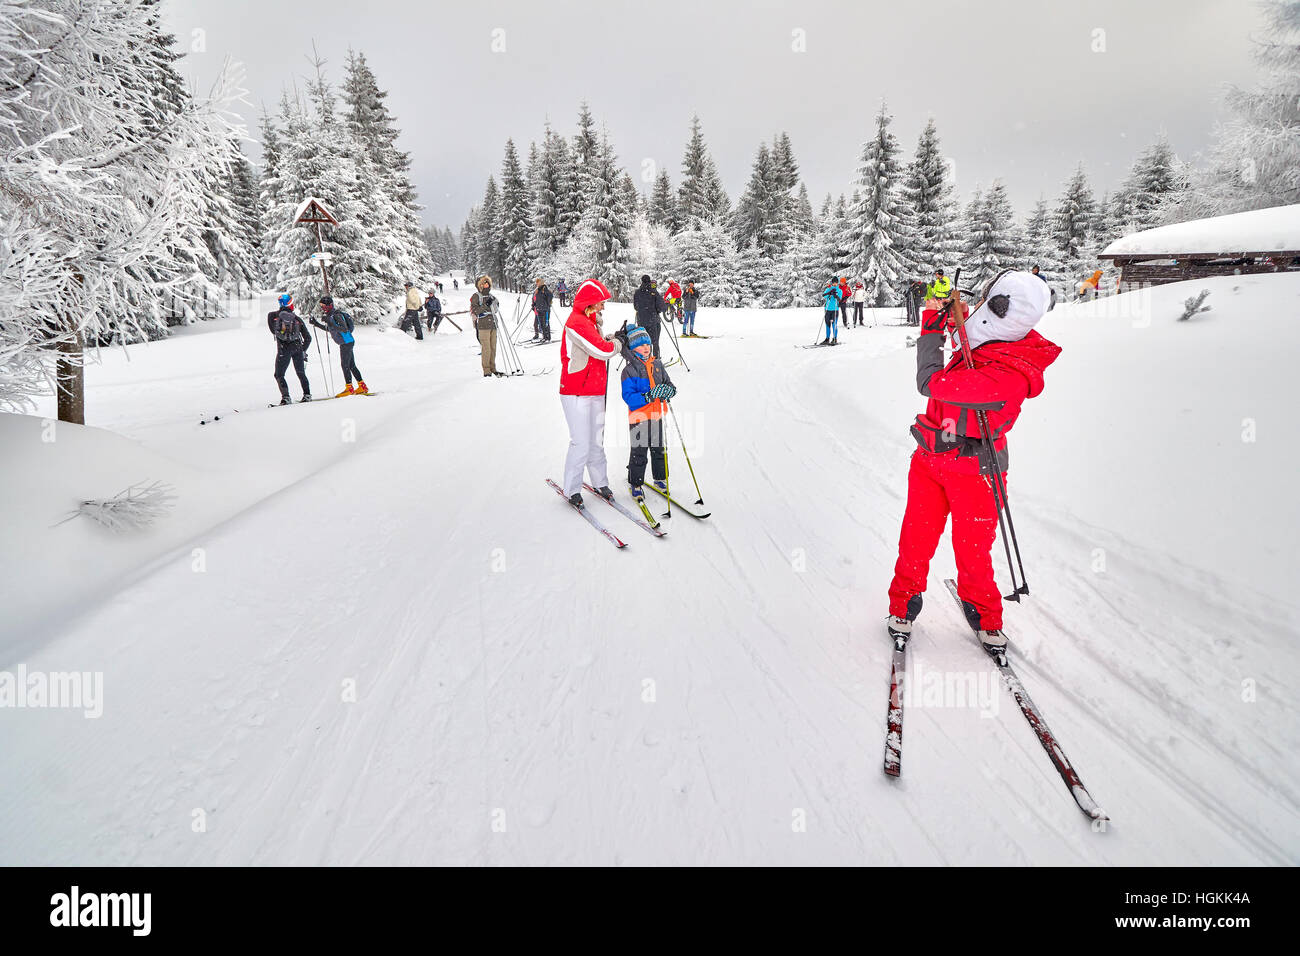 Jakuszyce, Poland - January 06, 2017: Cross-country skiers resting on trails intersection. - Stock Image